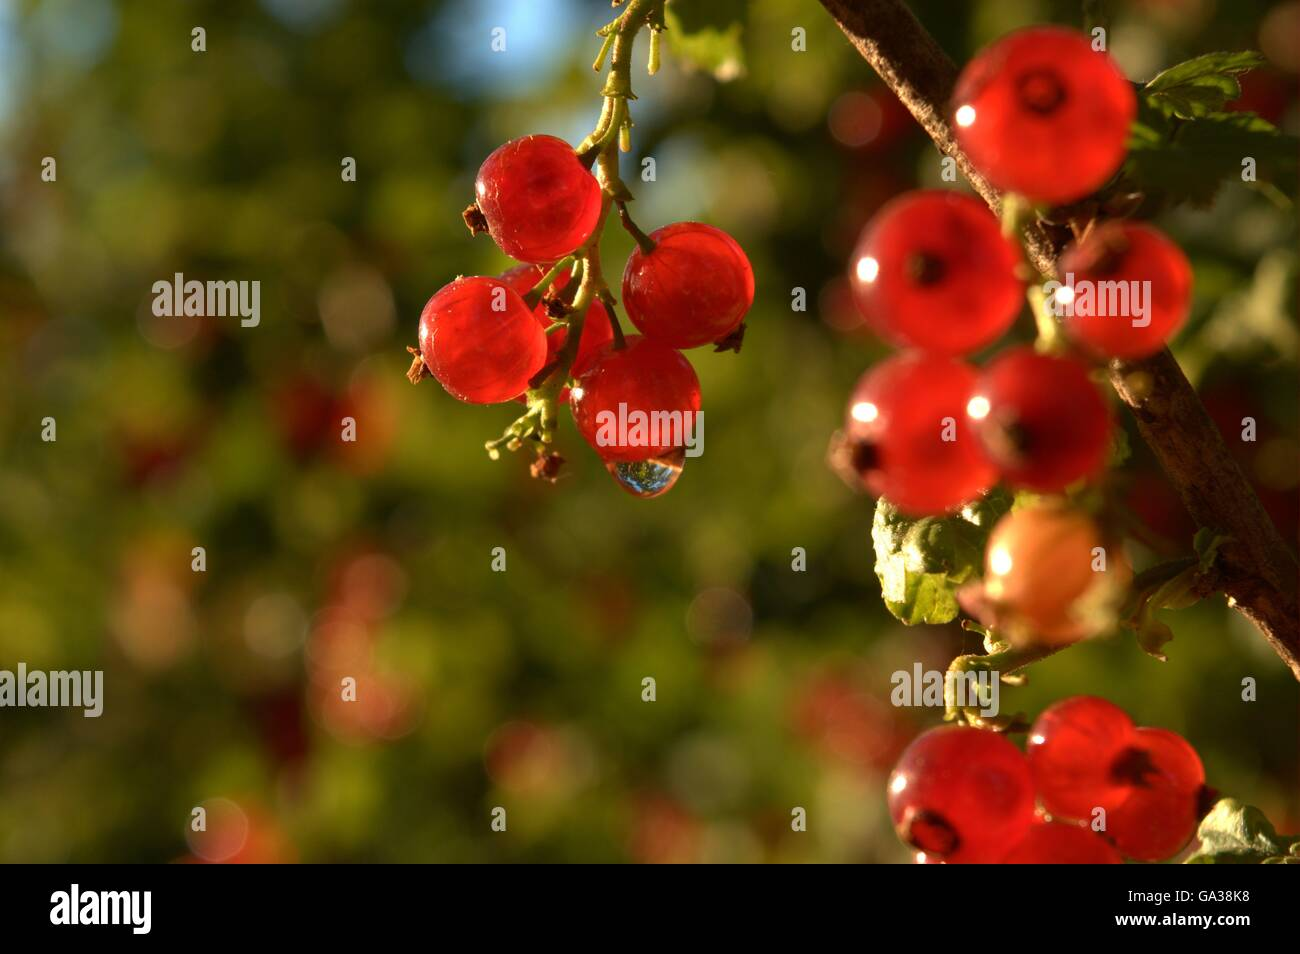 Berries and waterdrop - Stock Image